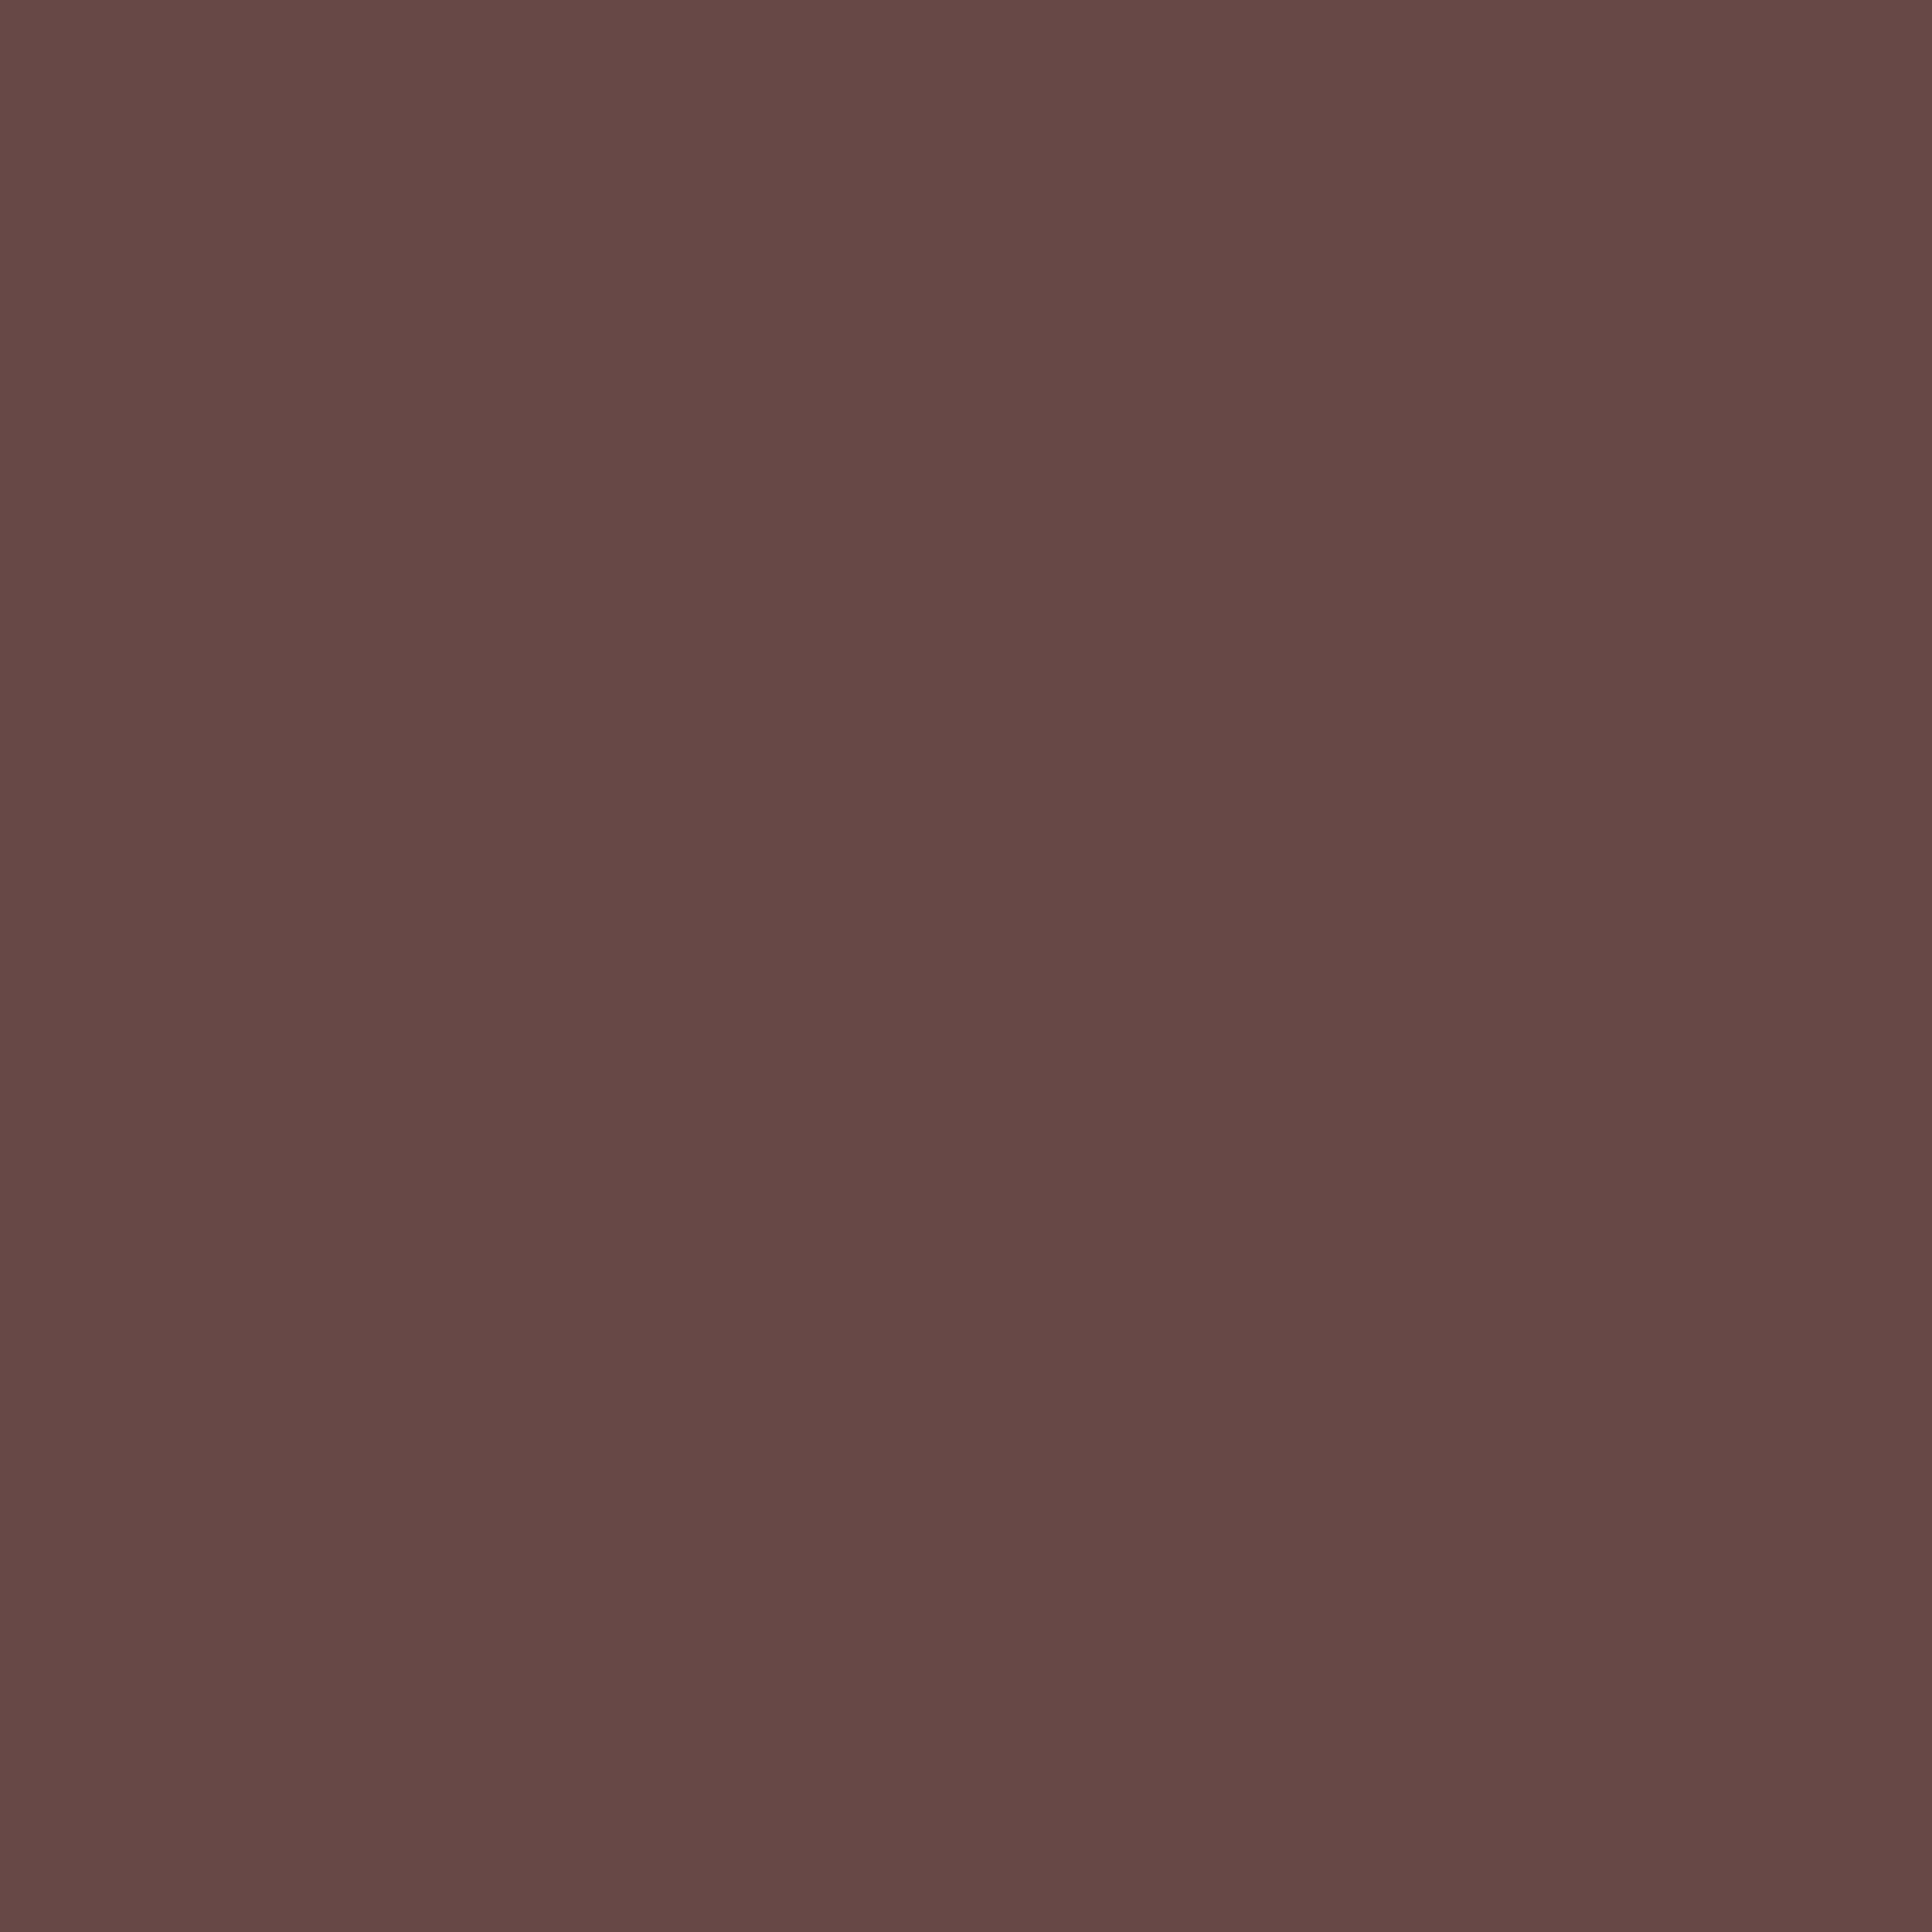 2048x2048 Rose Ebony Solid Color Background